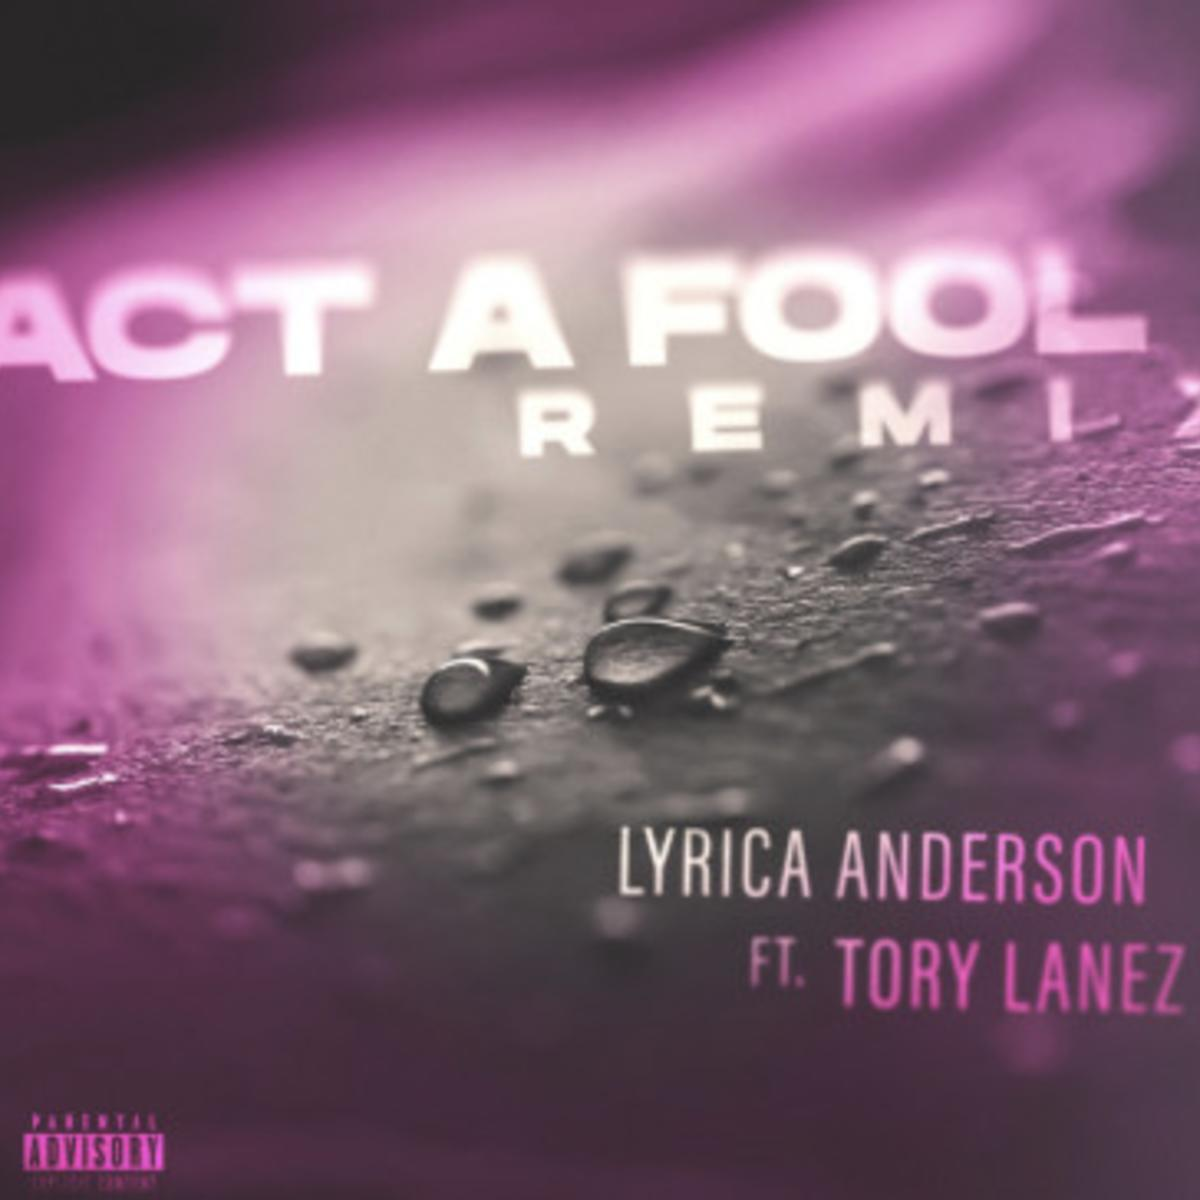 Lyrica Anderson Ft. Tory Lanez – Act a Fool (Remix)